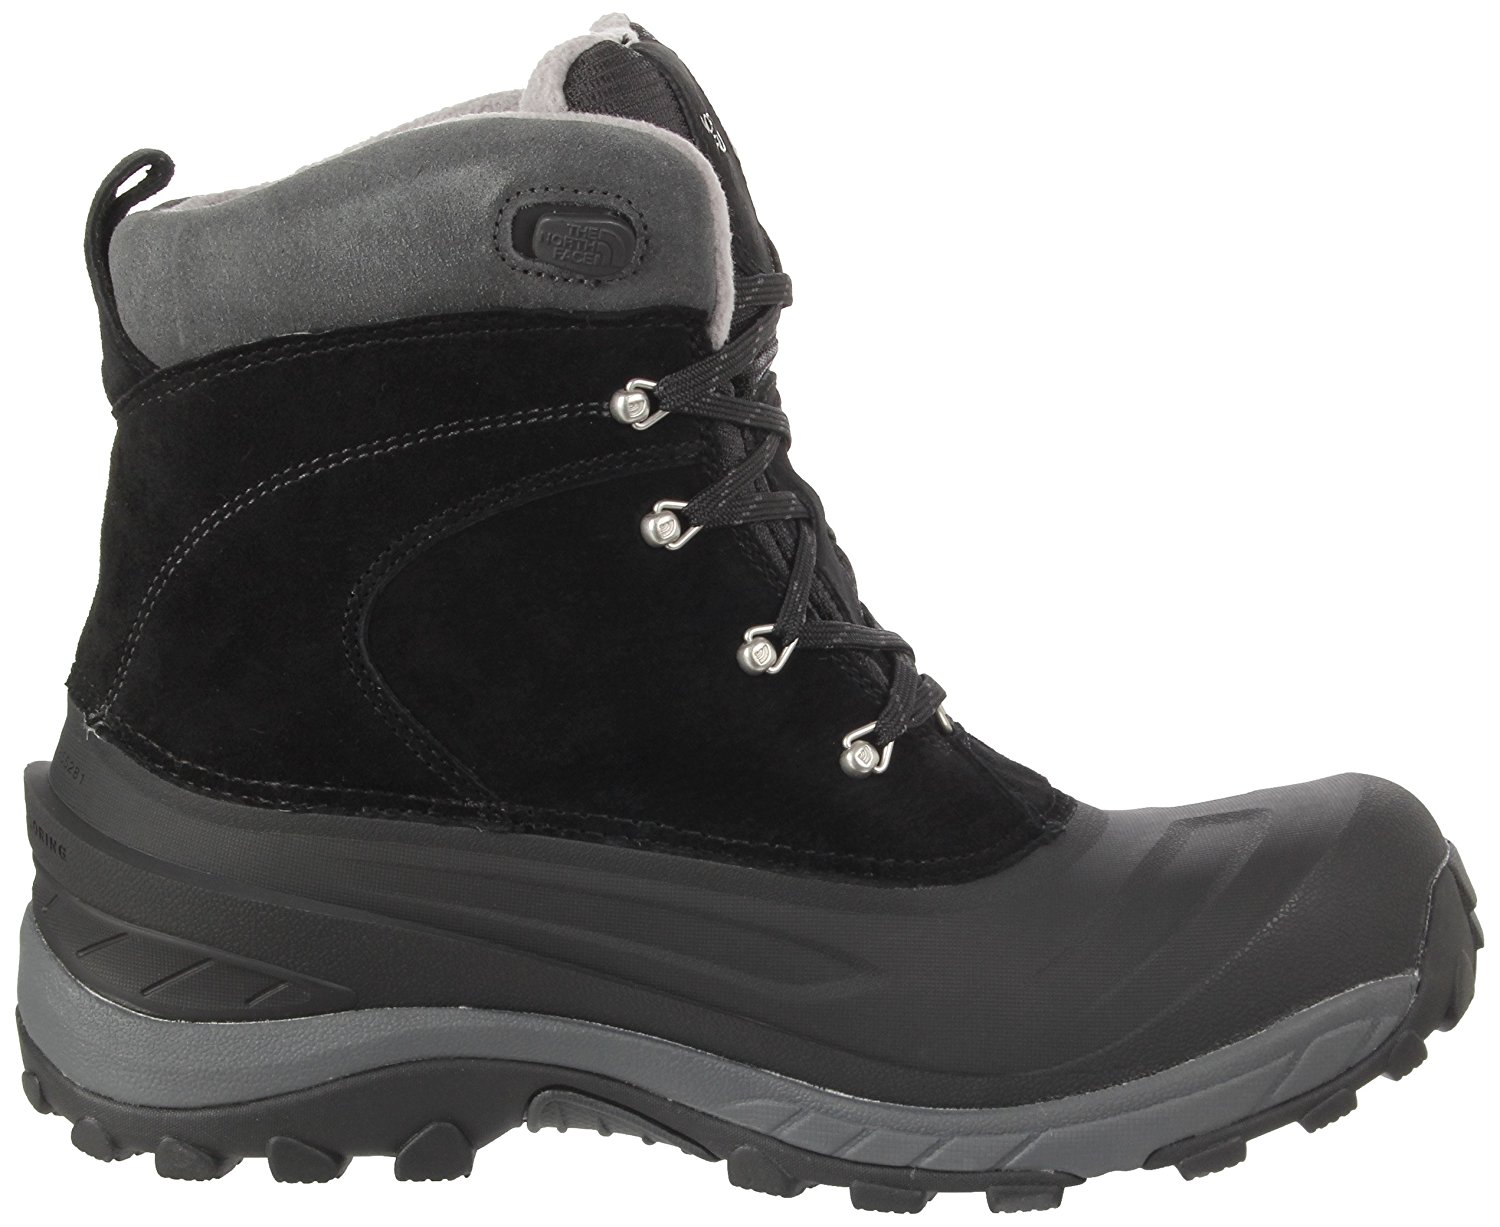 The North Face Men's Chilkat II Insulated Boots Black / Griffin Grey